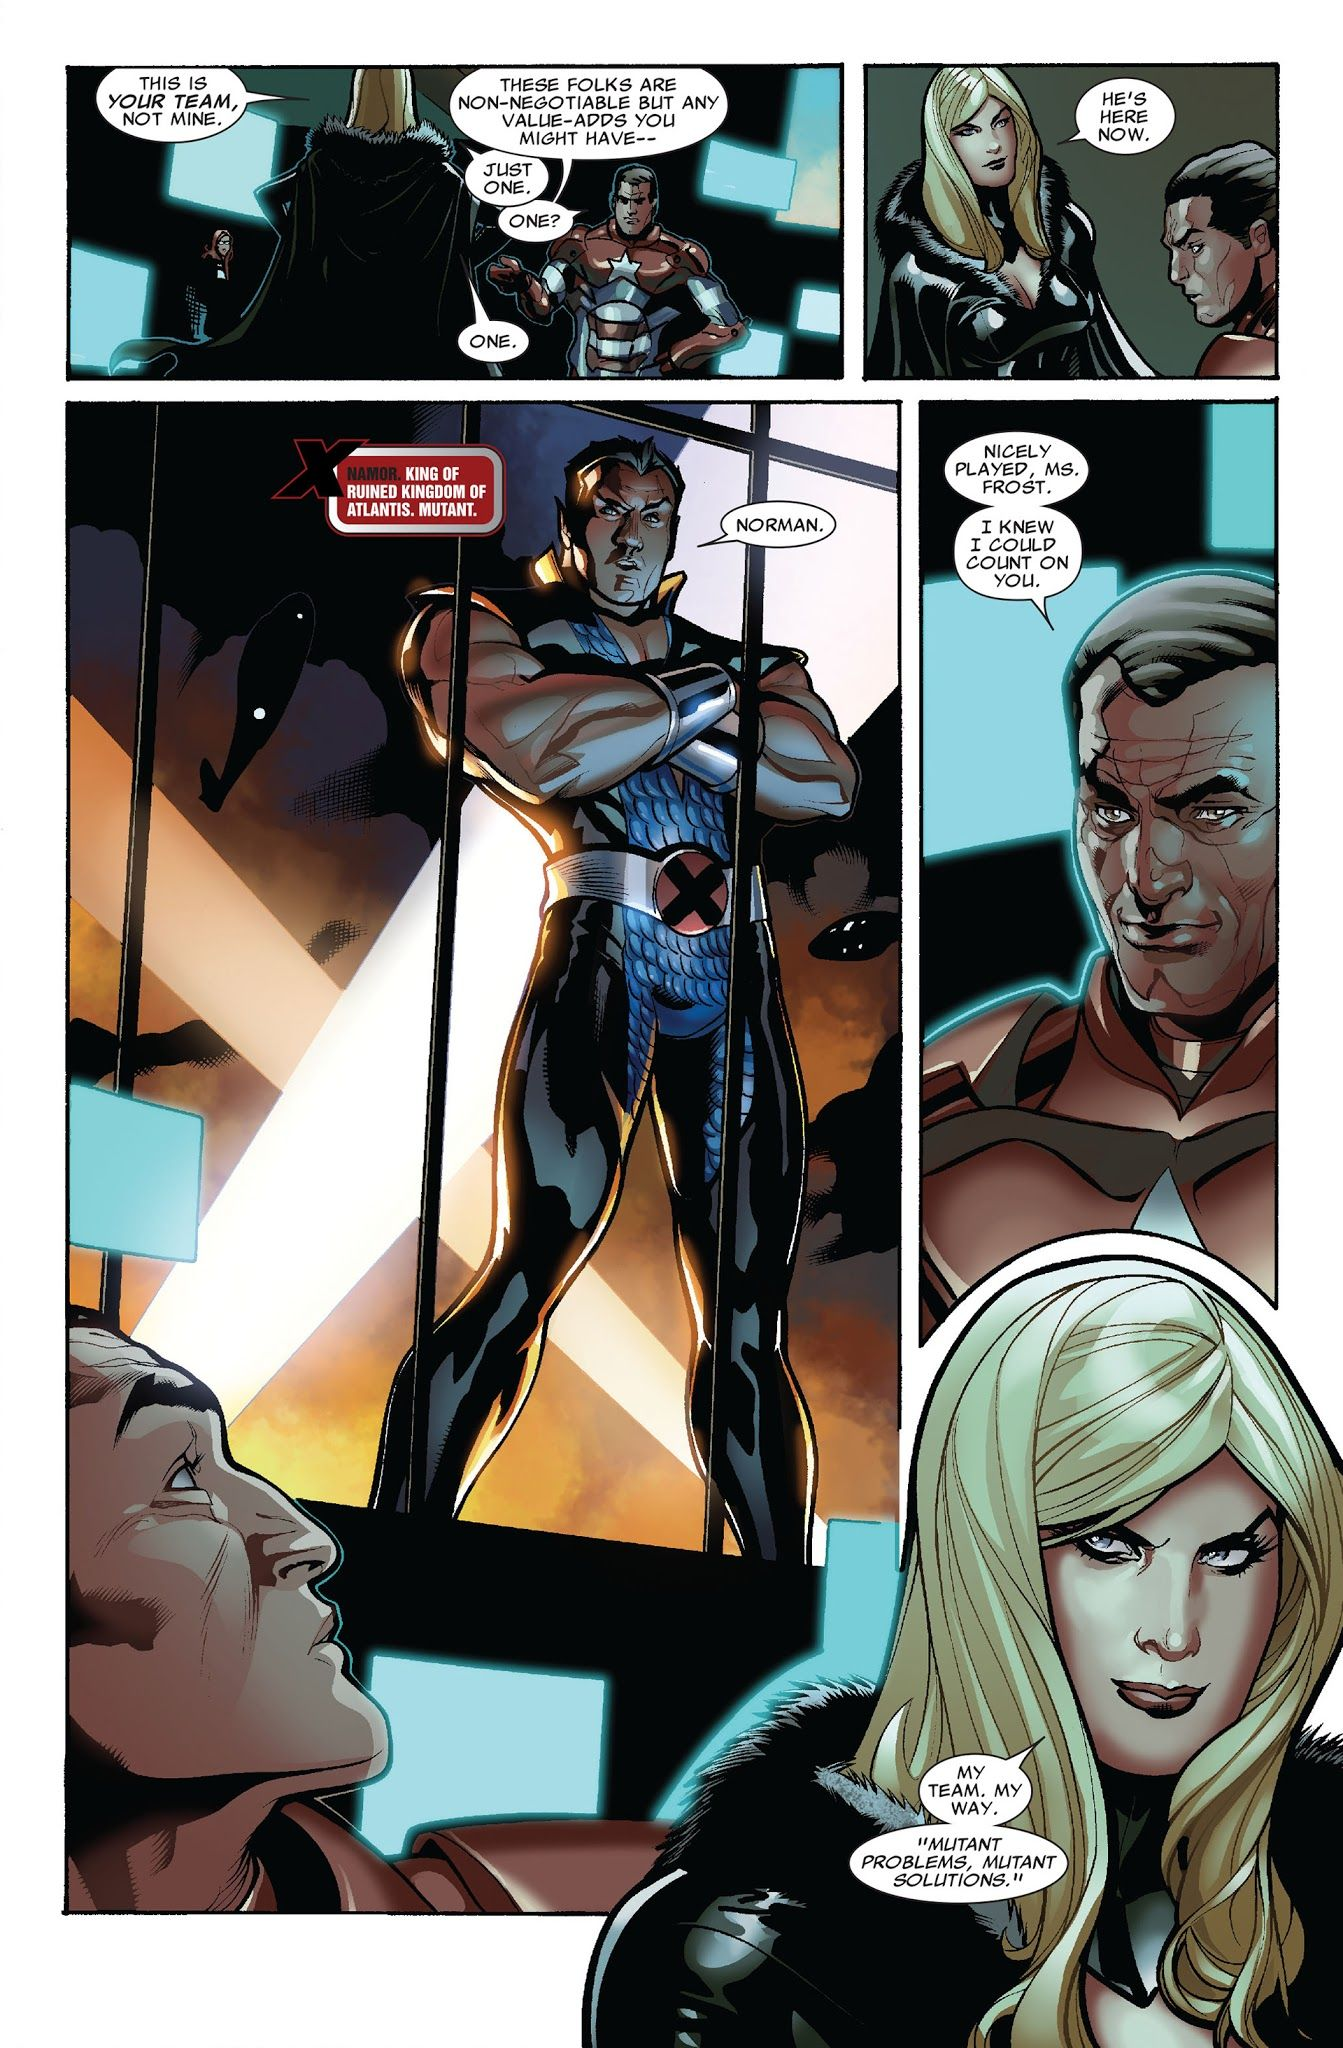 Pin By Z On Read Read Read In 2020 Superhero Art Brian Michael Bendis Marvel Entertainment